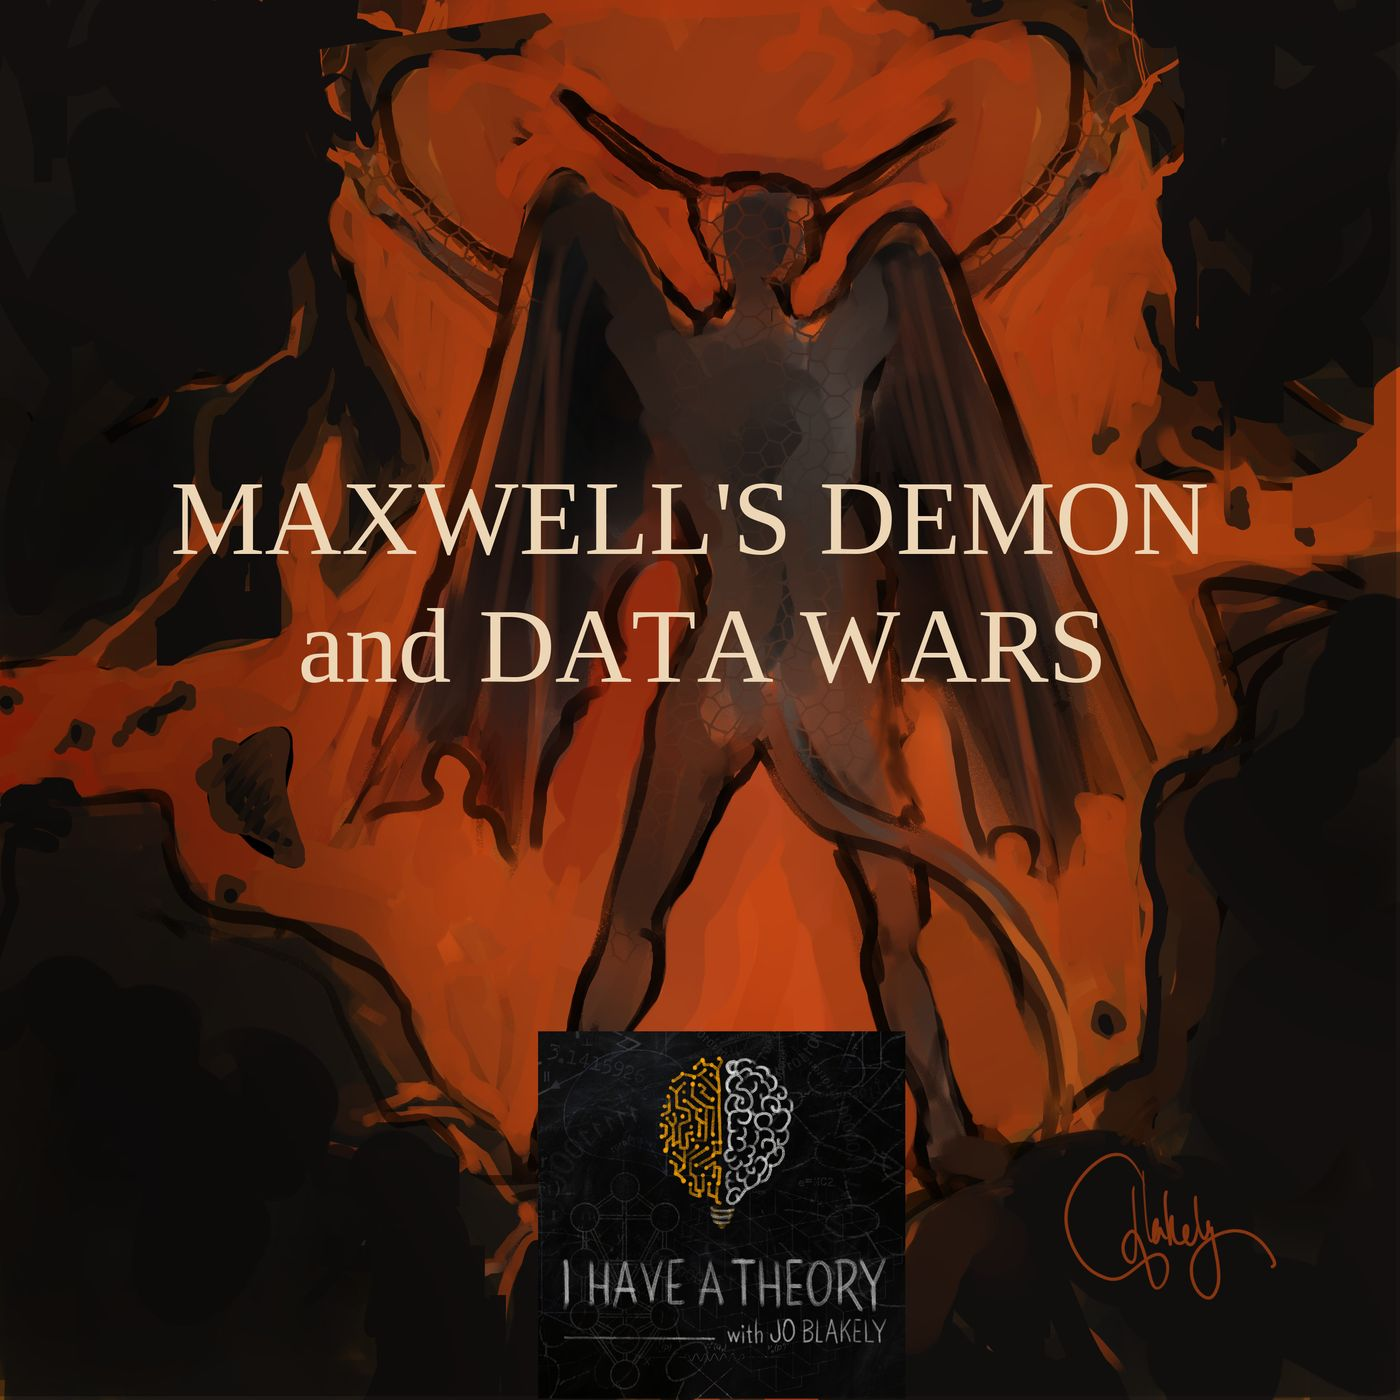 Maxwell's Demon and Data Wars